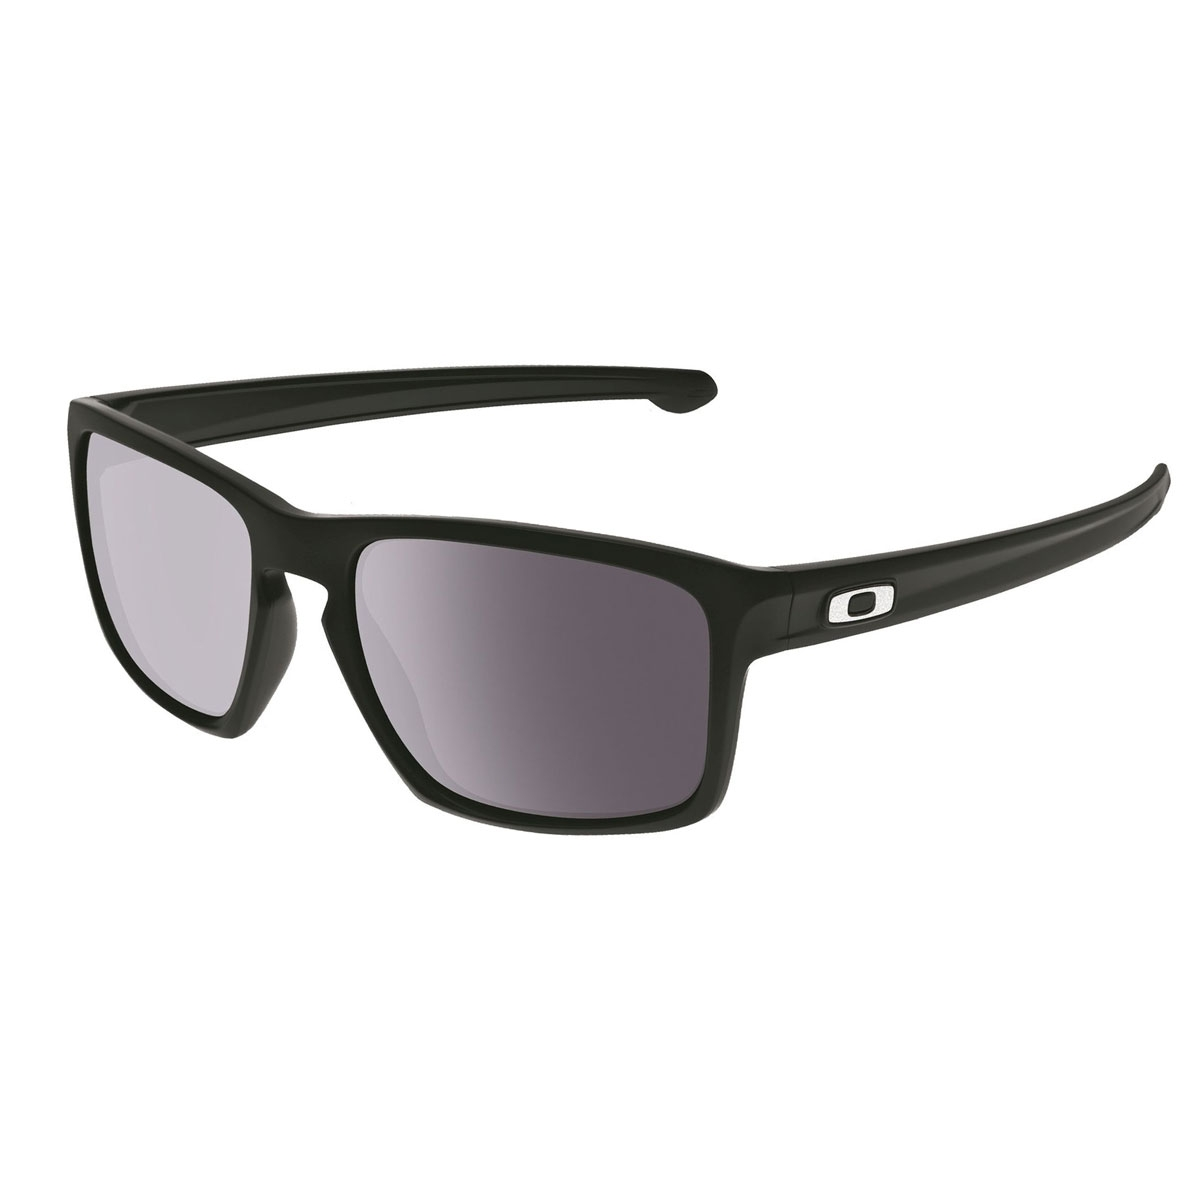 c12f0543ca7 Image of Oakley Sliver Sunglasses - Matte Black   Grey